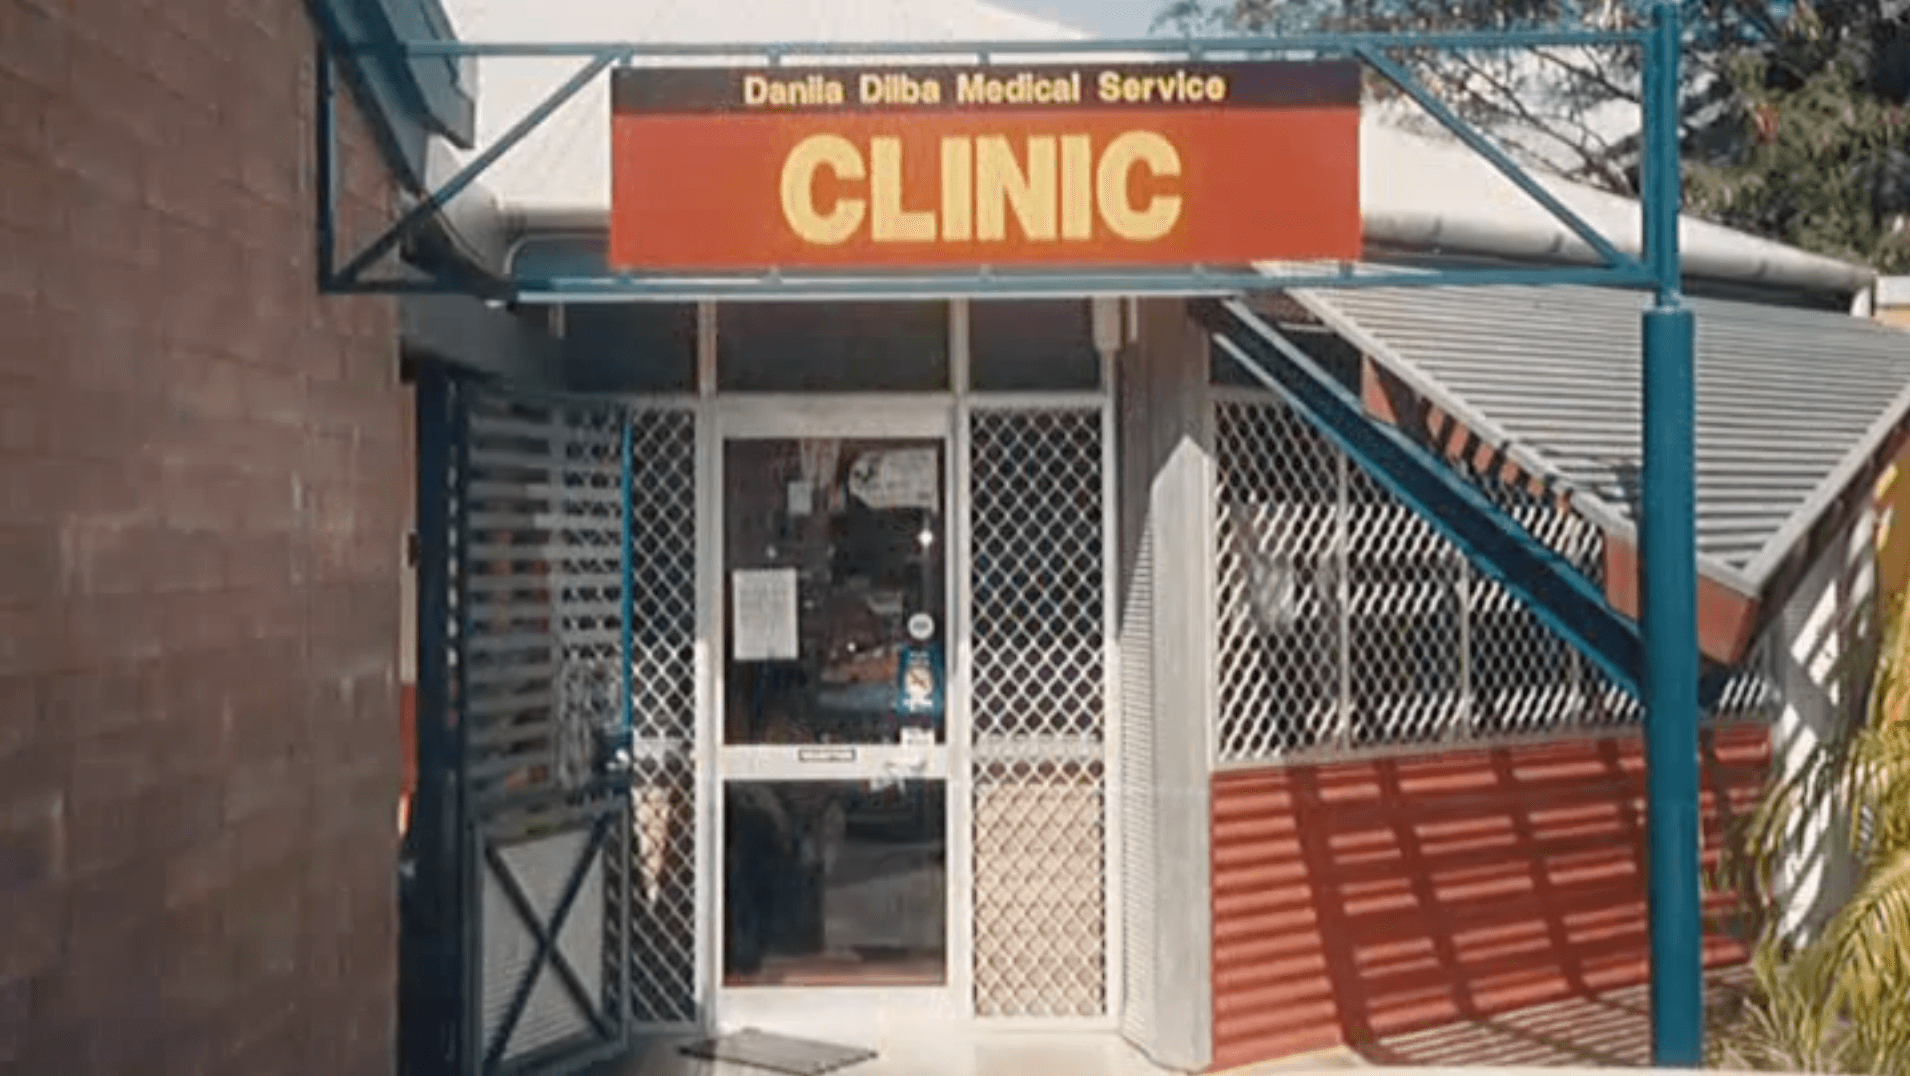 Old Danila Dilba Clinic